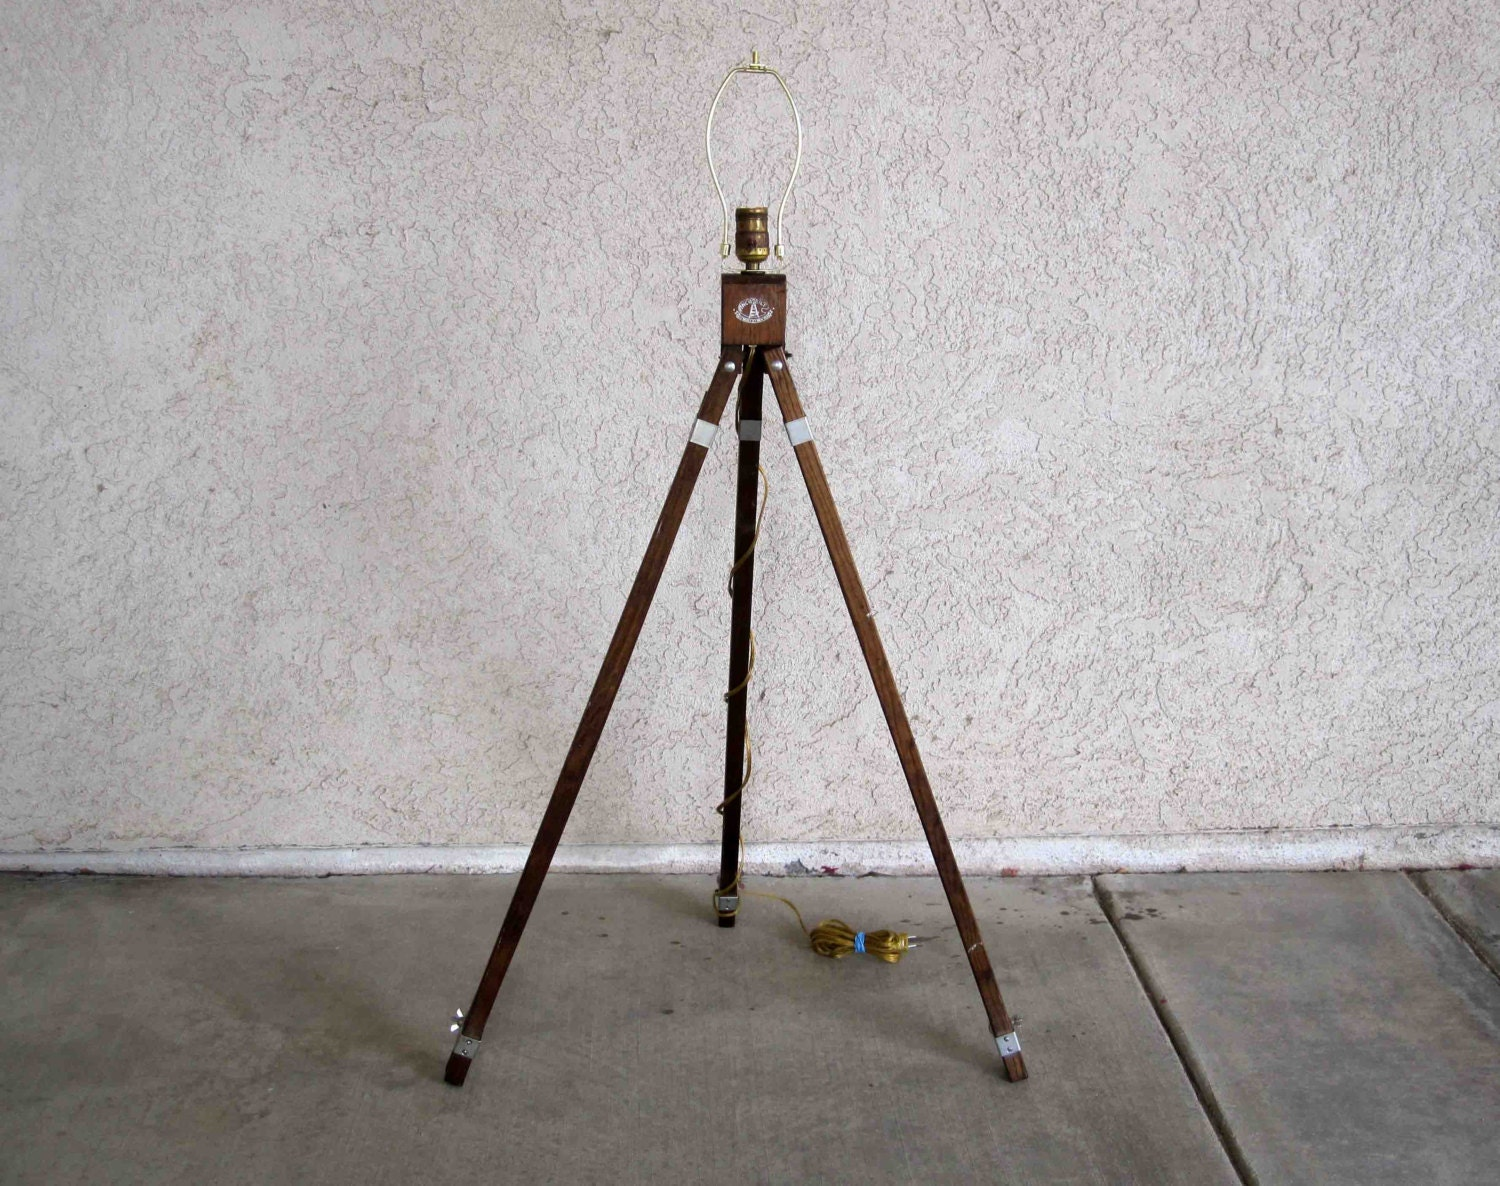 Vintage Mid Century Anco Bilt Art Easel Lamp Up Cycled